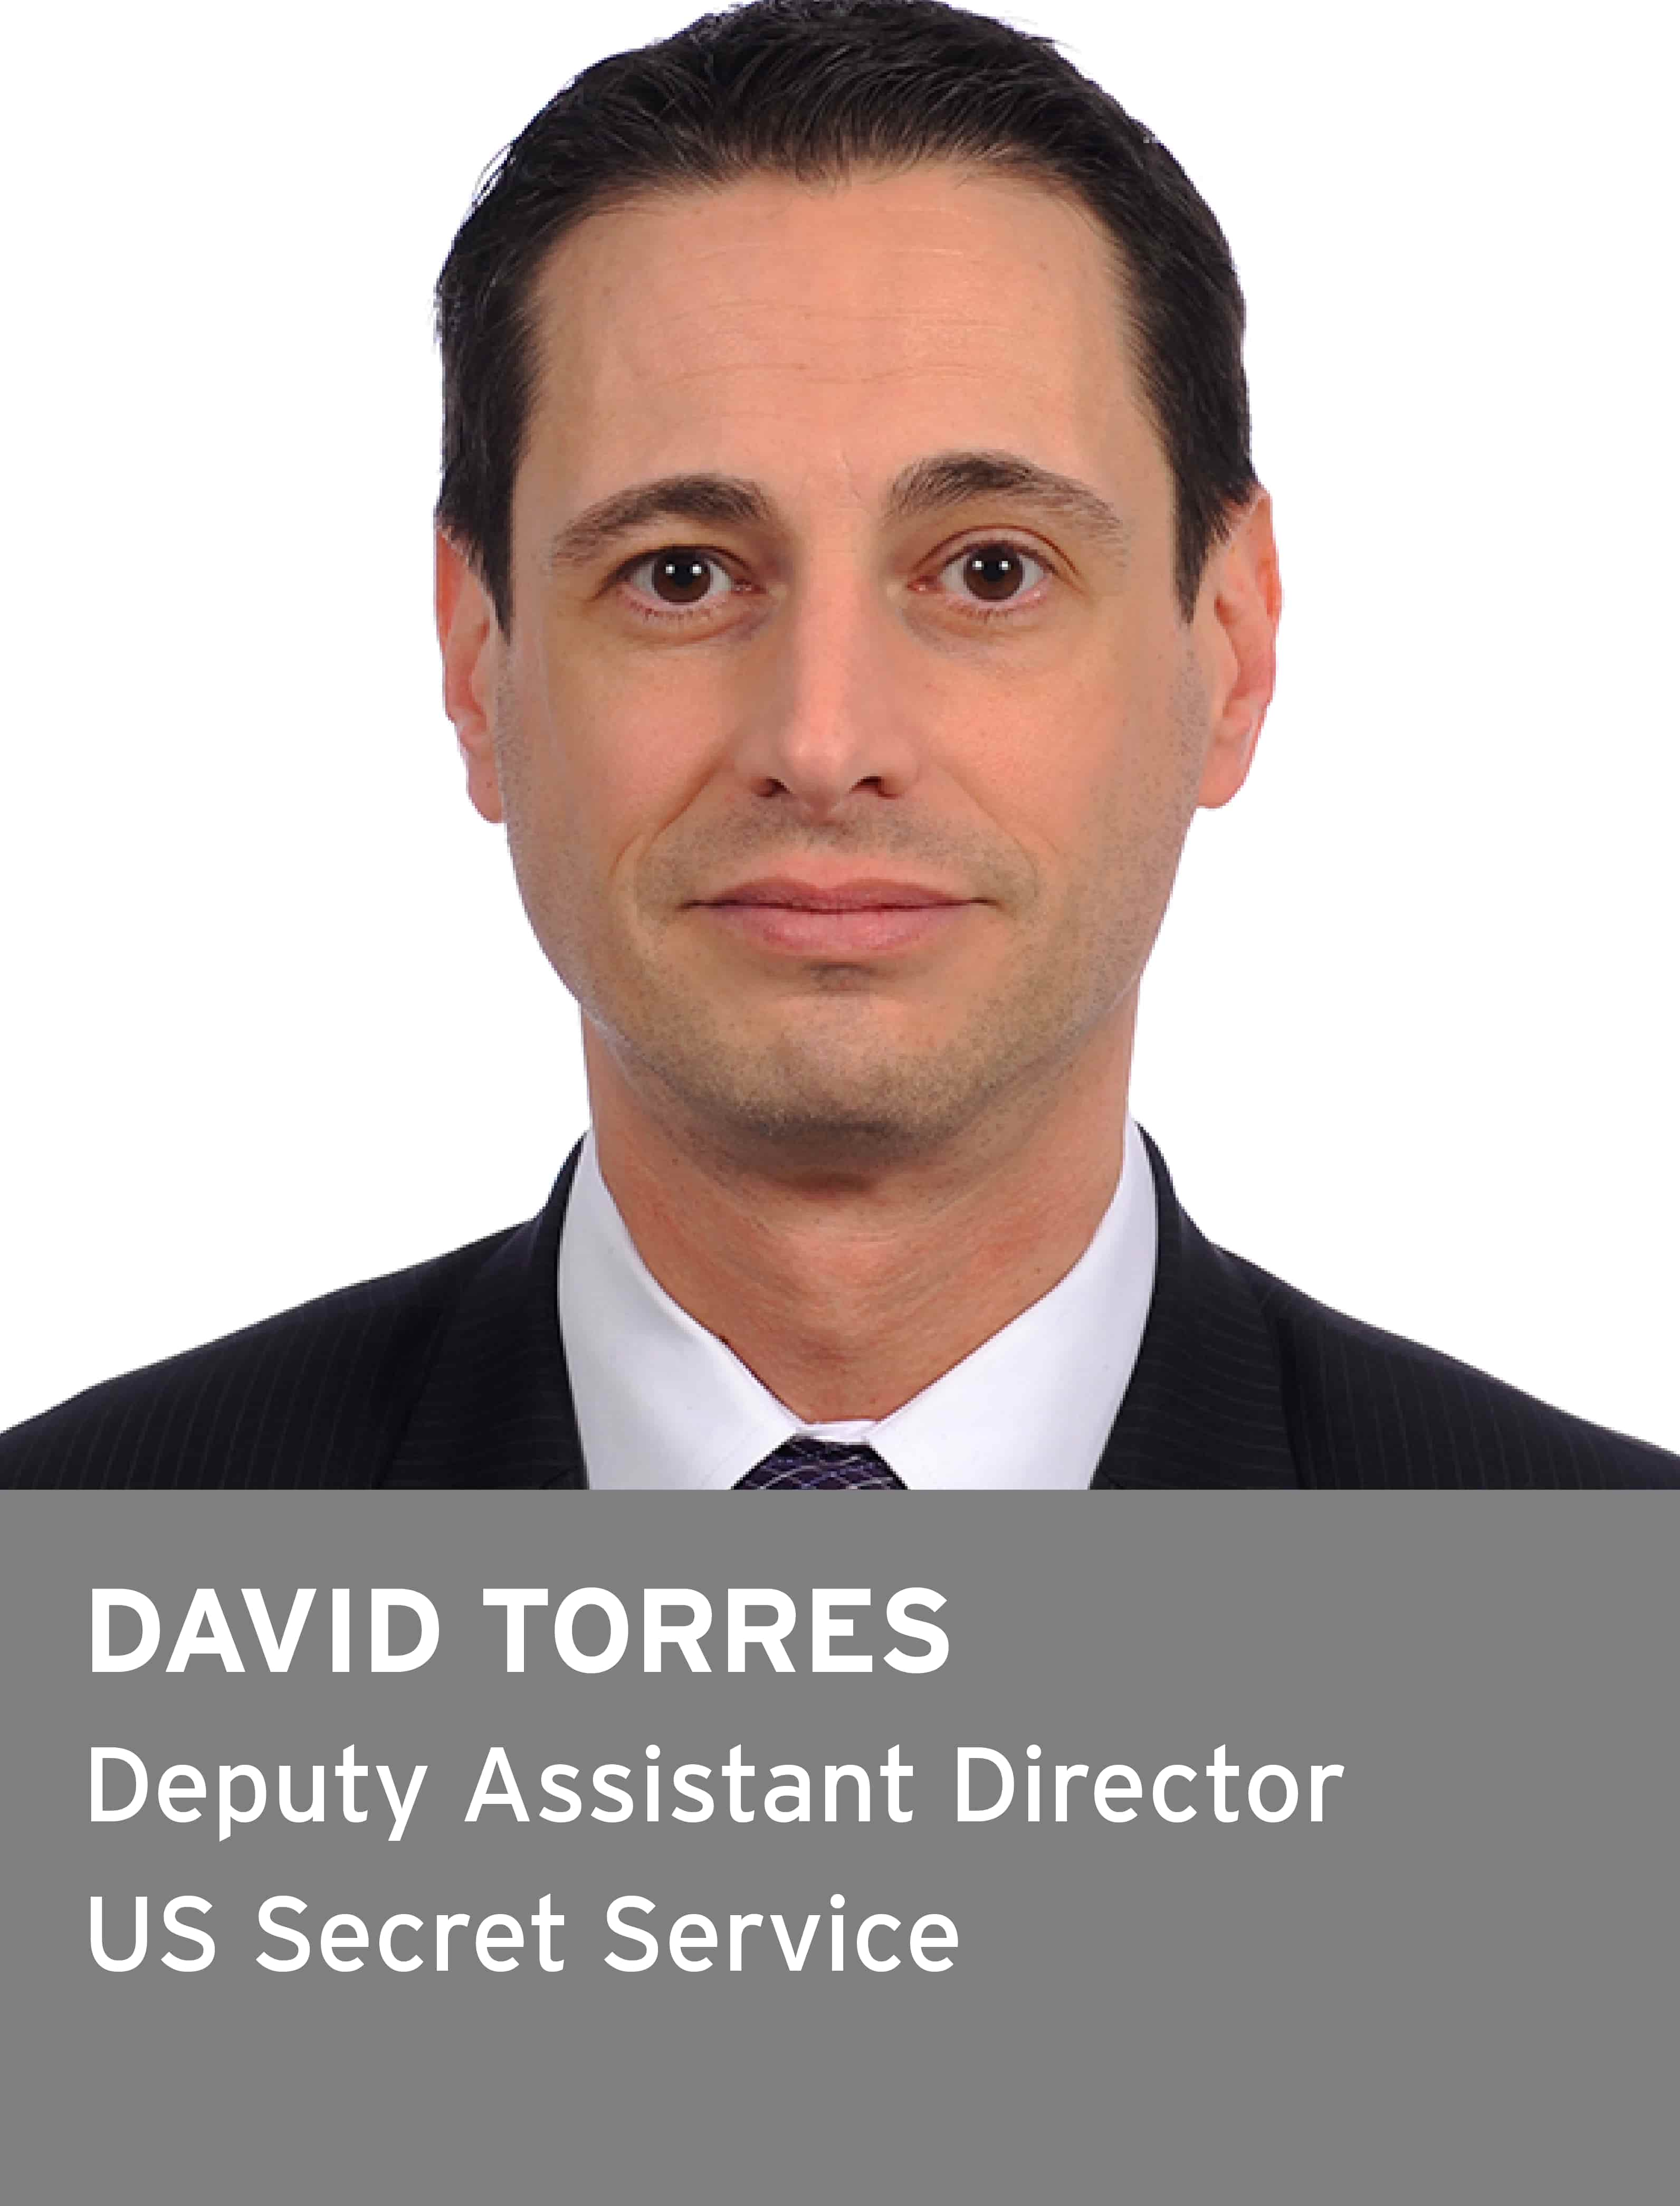 David Torres, Deputy Assistant Director, US Secret Service